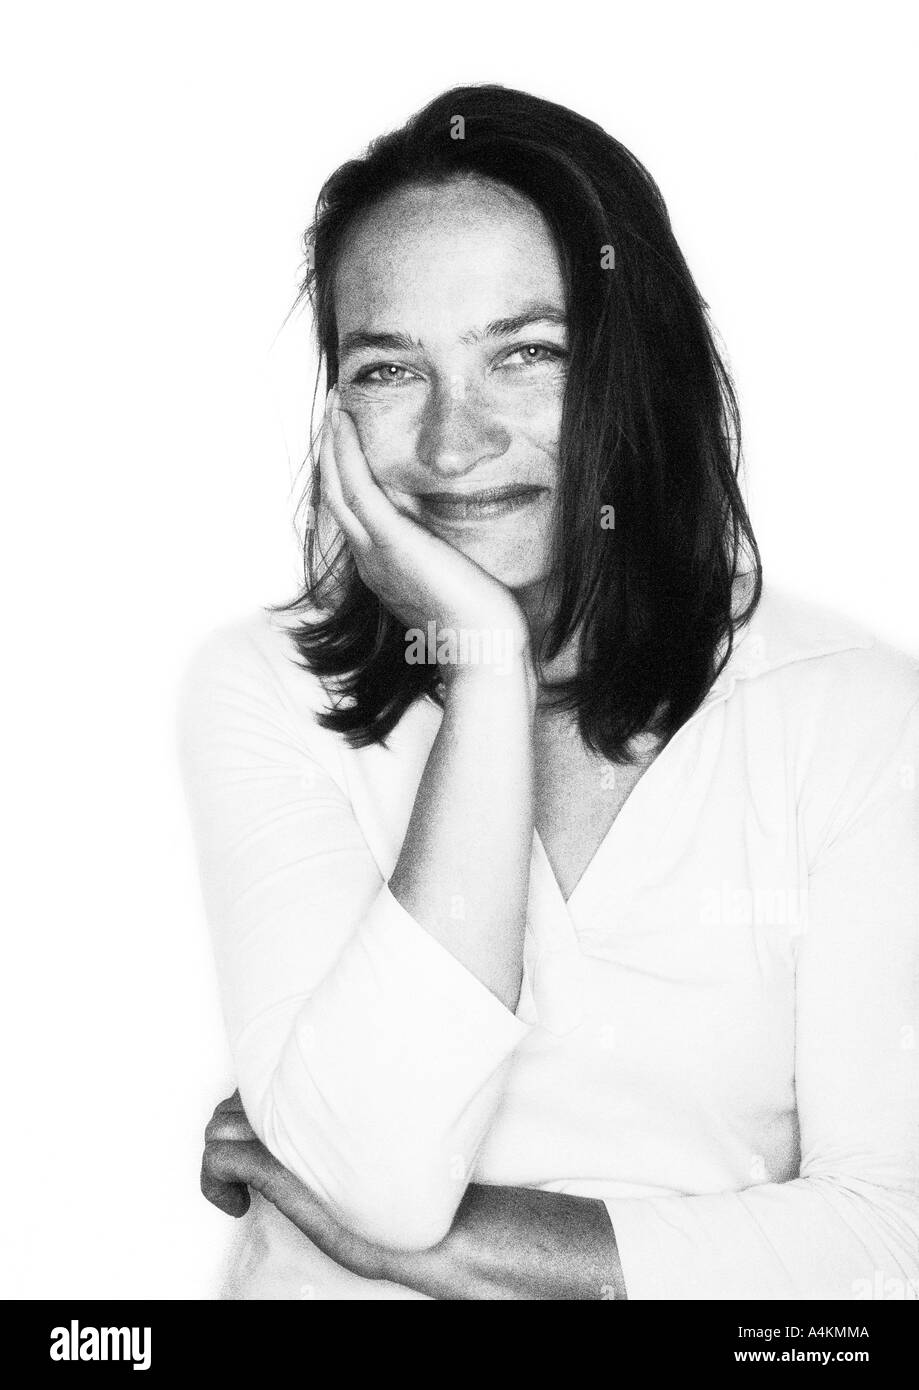 Woman smiling, portrait, joue sur la main b&w. Photo Stock